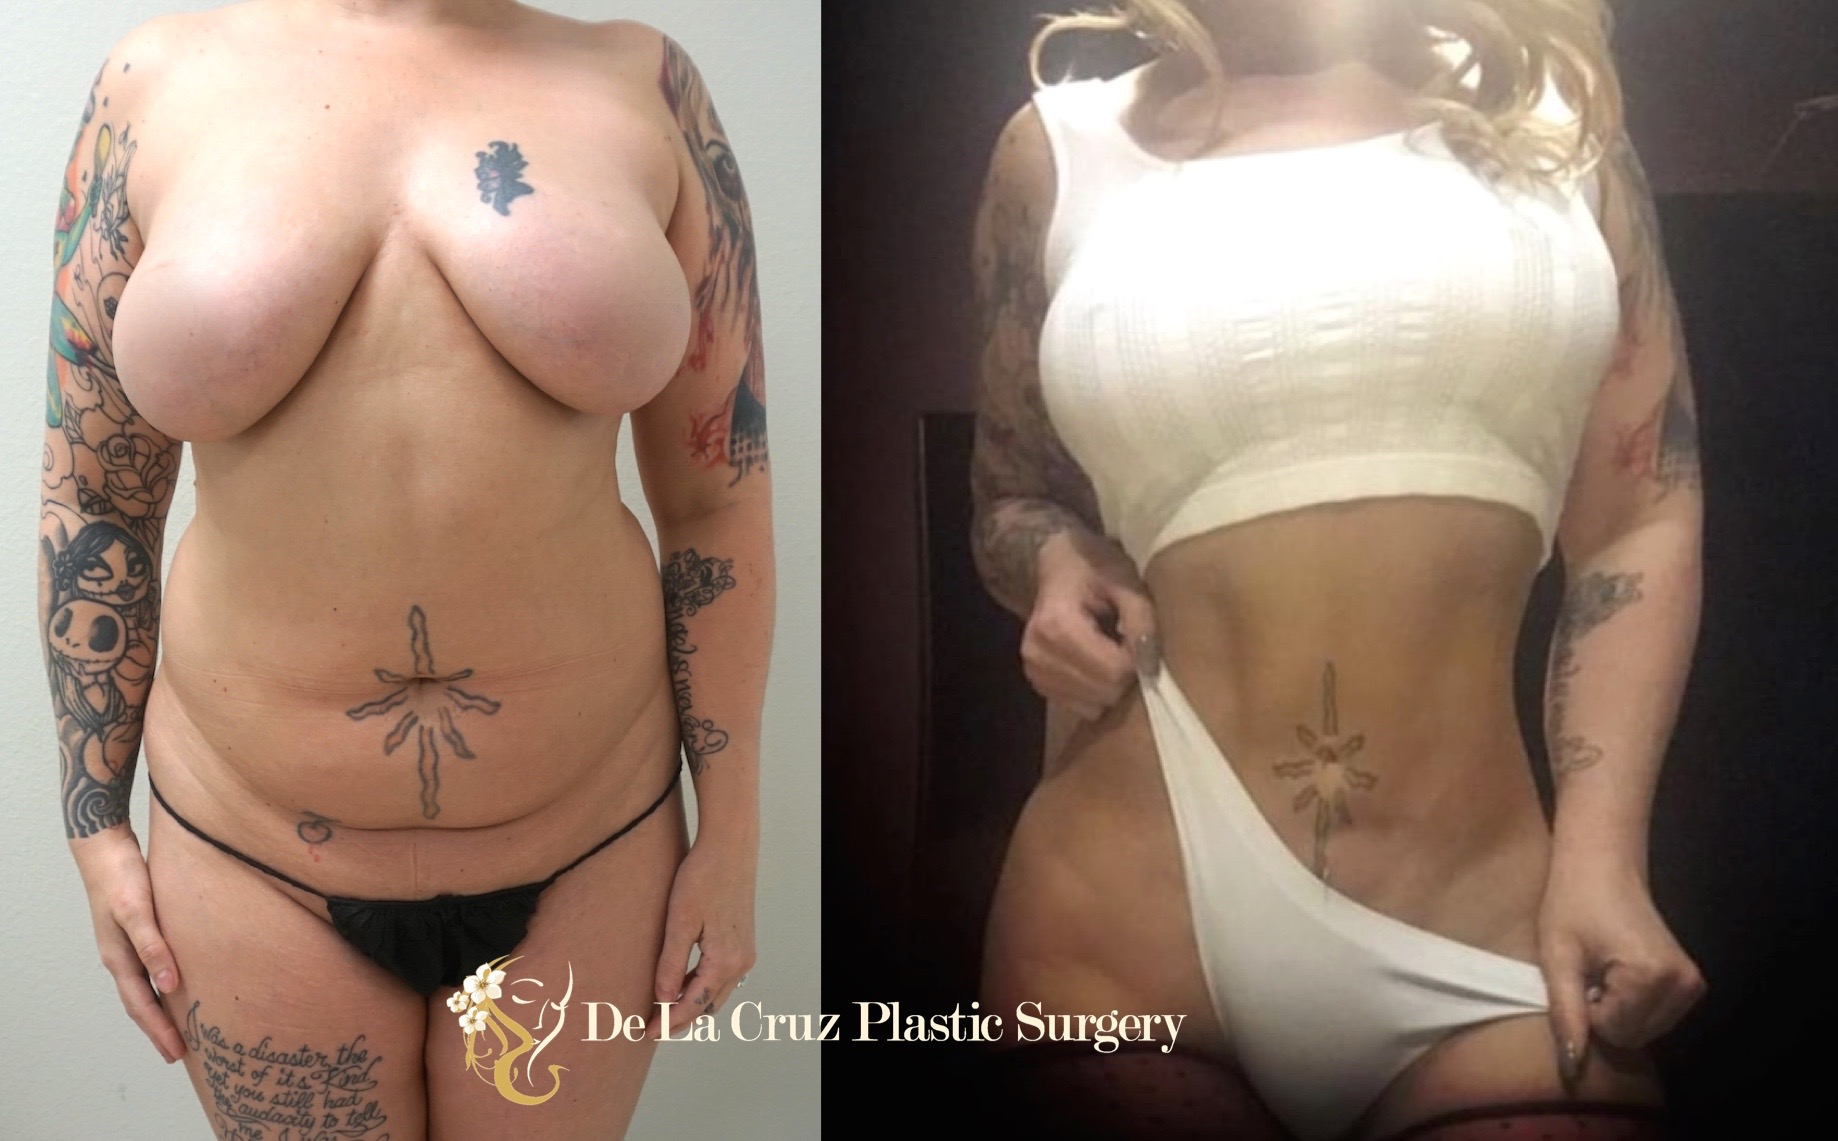 Before and After Photos of  4D VASER Hi-Definition Liposculpture  (3 months after surgery) performed by Emmanuel De La Cruz MD, Houston Plastic Surgeon